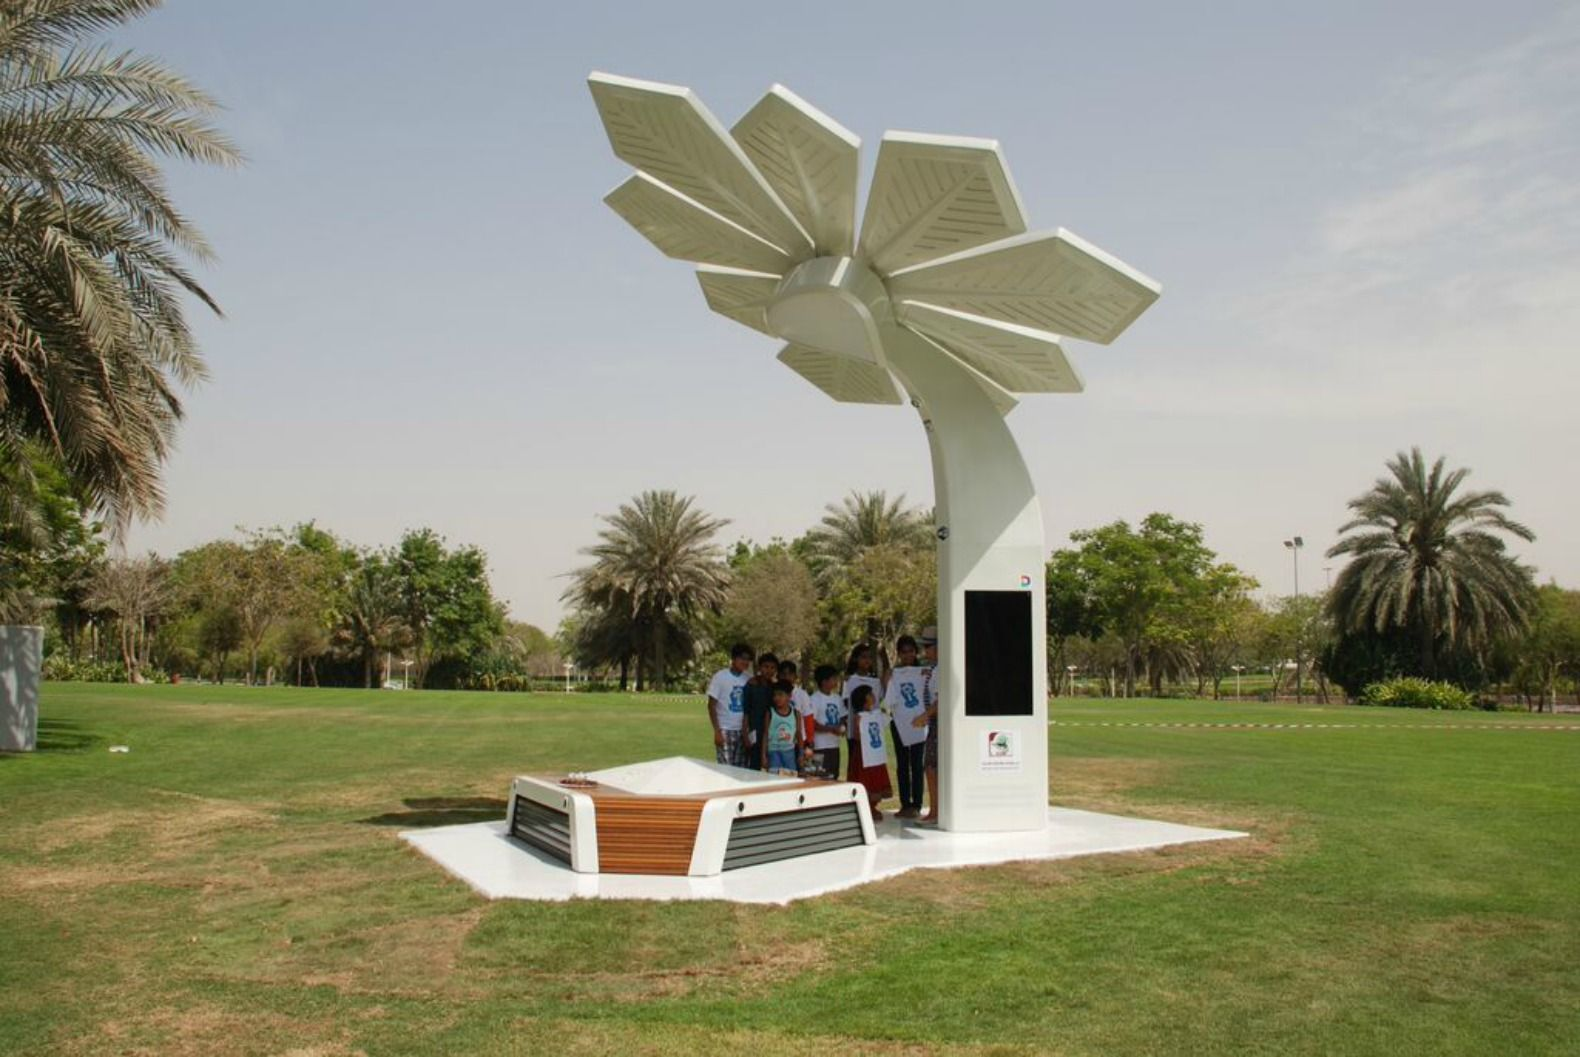 Solar-powered Smart Palms in Dubai offer beach goers wifi and charging stations